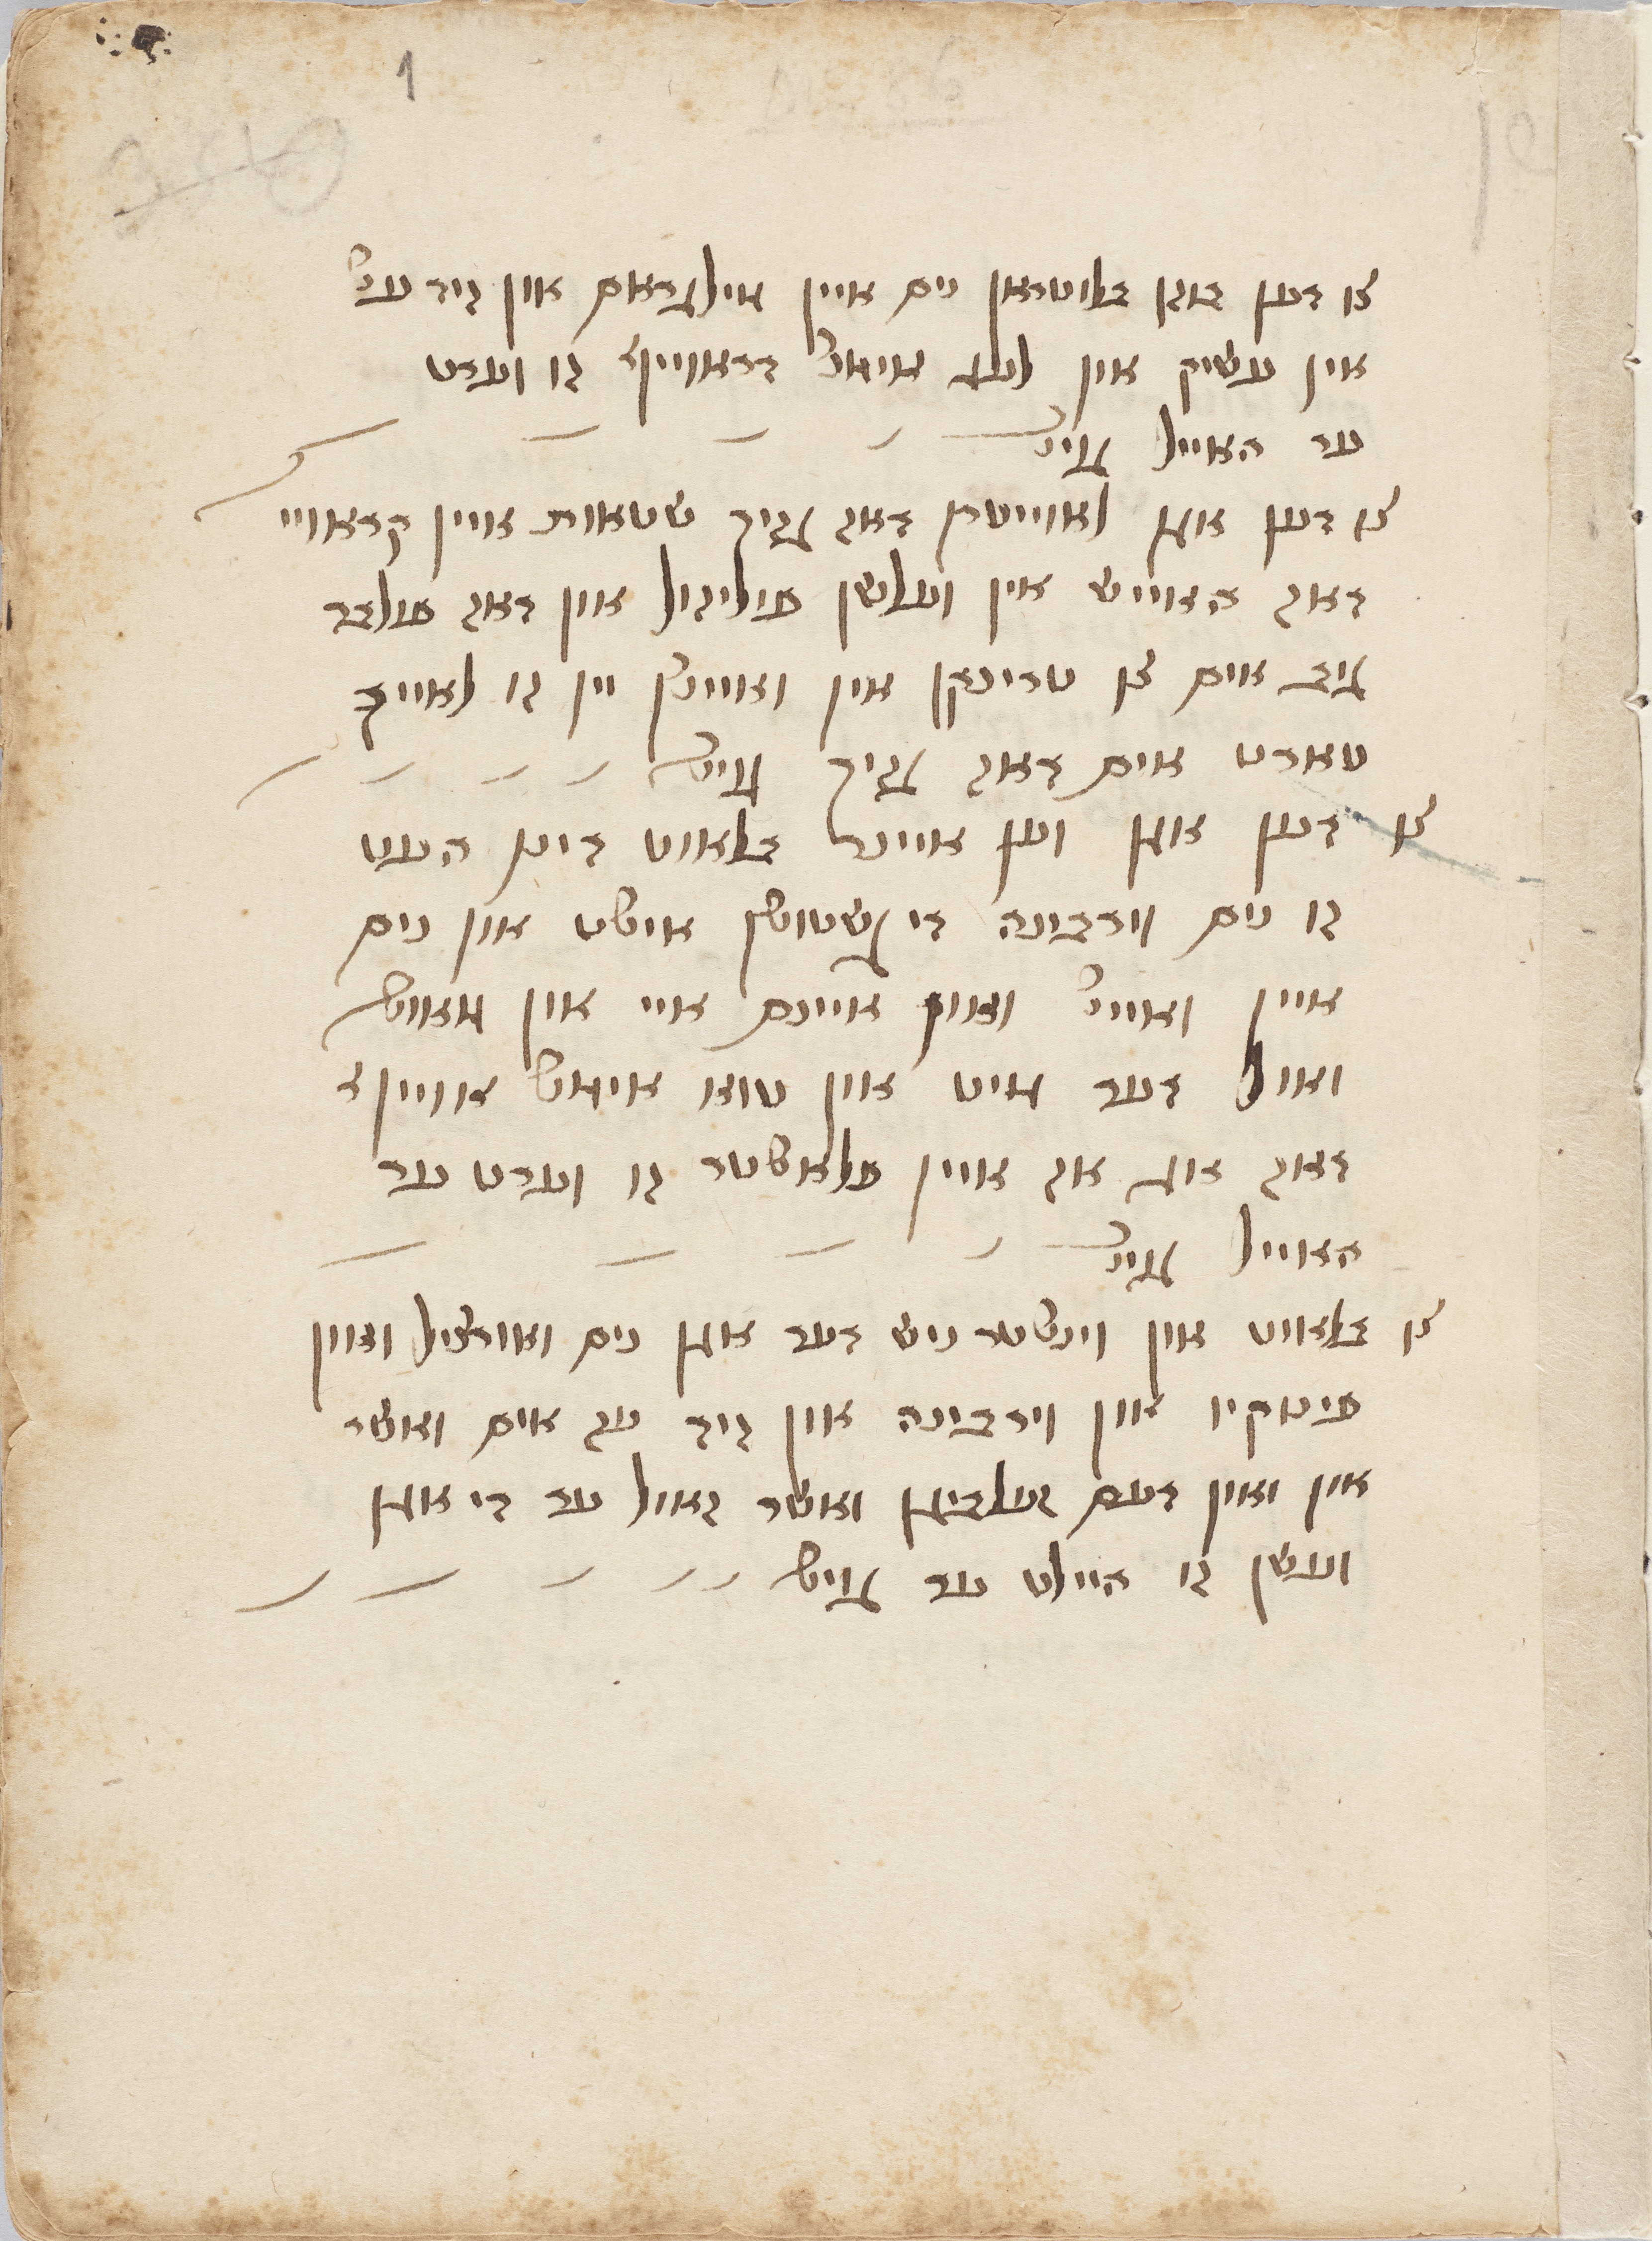 "<p><em>Sefer Refu'os u'Segulos</em> (Book of Remedies and Incantations), fifteenth century Italian manuscript featured in the ""Yiddish at Columbia"" exhibit in the Chang Octagon Gallery in the <a href=""http://library.columbia.edu/locations/rbml.html"" target=""_blank"" rel=""noopener"">Rare Book <span class=""amp"">&</span> Manuscript Library</a> at Columbia University in early March.</p>"